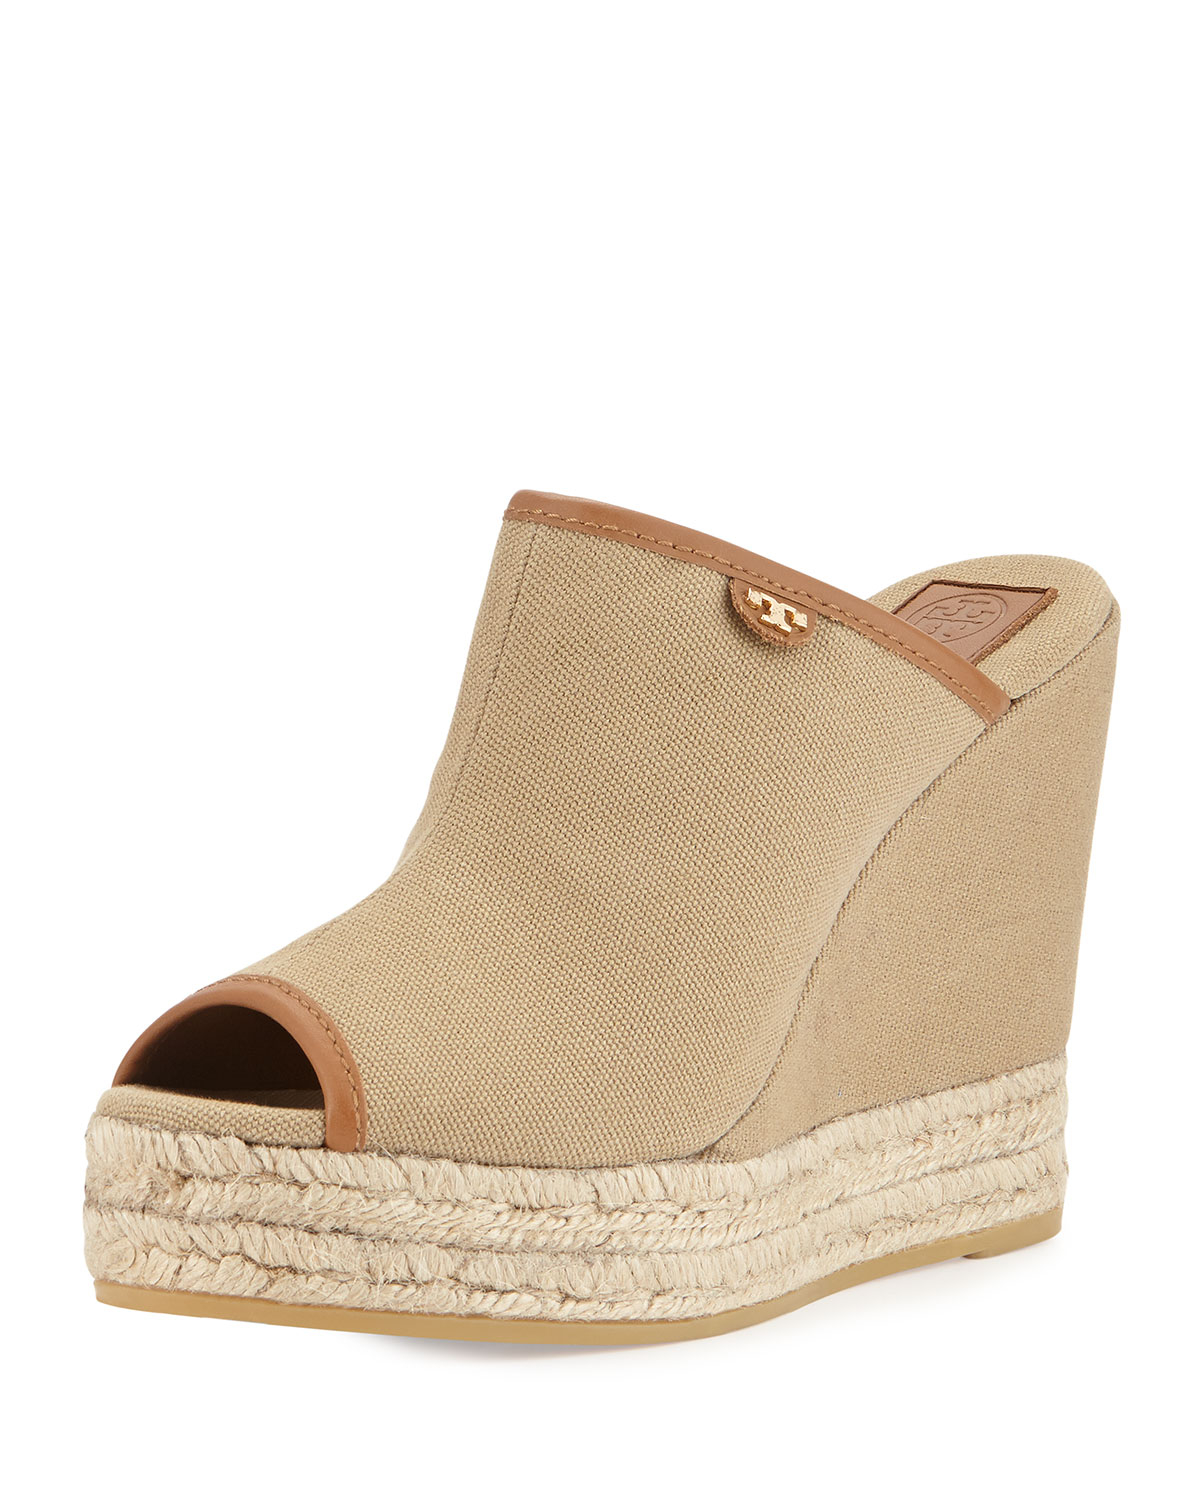 Tory Burch Canvas Slip On Wedge Mule In Natural Lyst